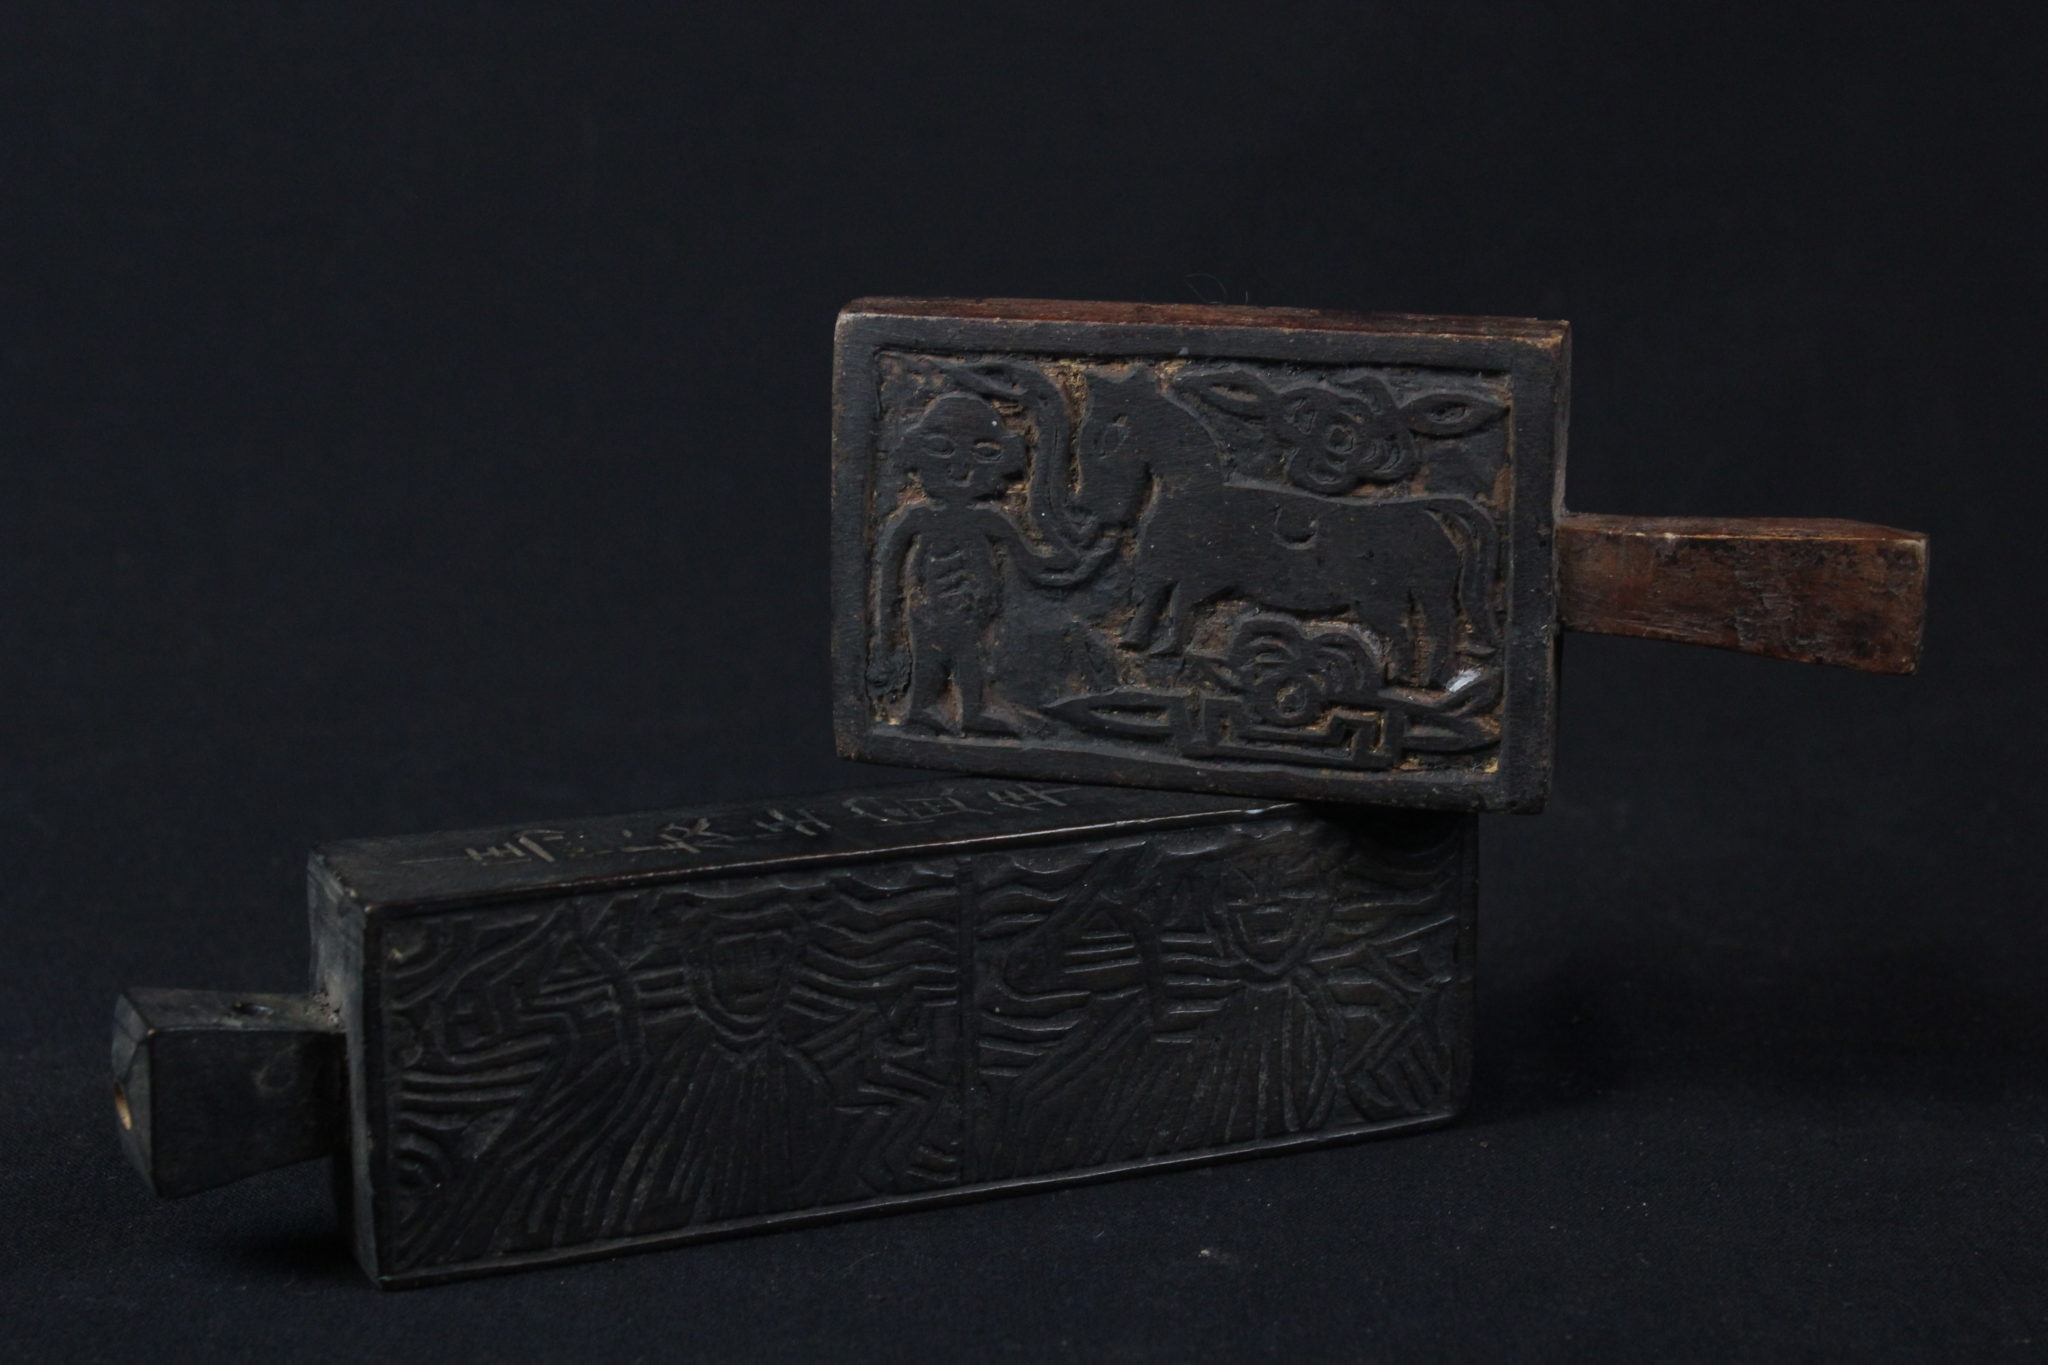 """Shaman Printing Block, Tuyen Quang province, Vietnam, Mid 20th c, Printing blocks are important shaman tools for creating talismans and ghost money to burn as offerings to deities. They were stamped on paper or on envelopes to mark the contents as holy. (Top - 2 ¼"""" x ½' x 5', $110.); (Bottom, 1 ¾"""" x 6 ¼"""" x 1"""", $90.)"""